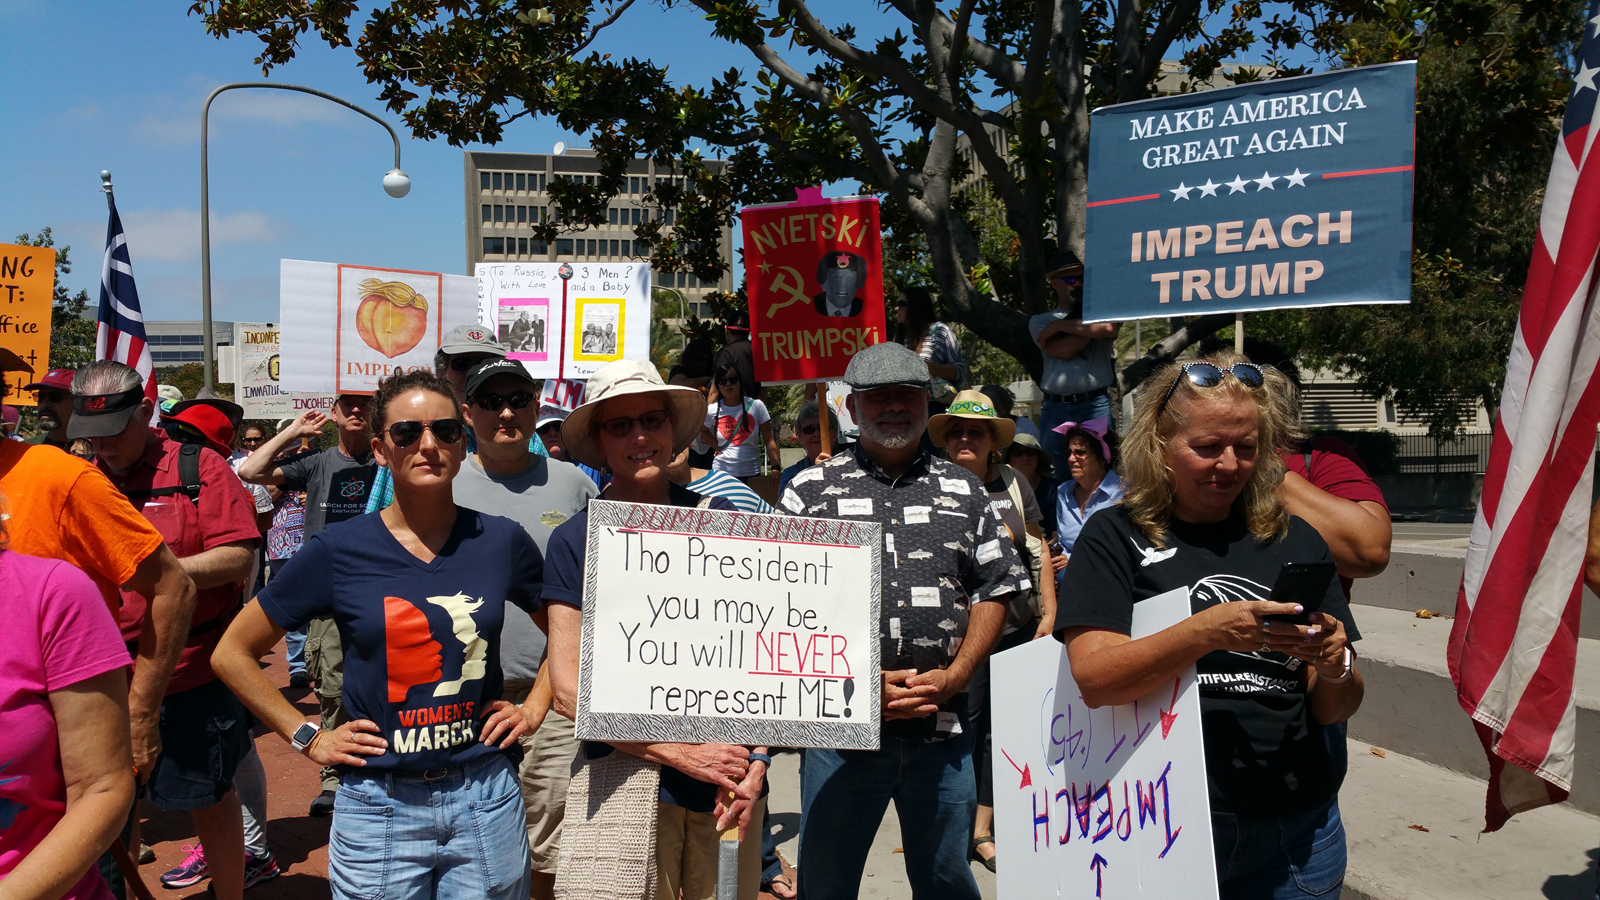 Protesters rally in Santa Ana, other U.S. cities, to impeach Trump